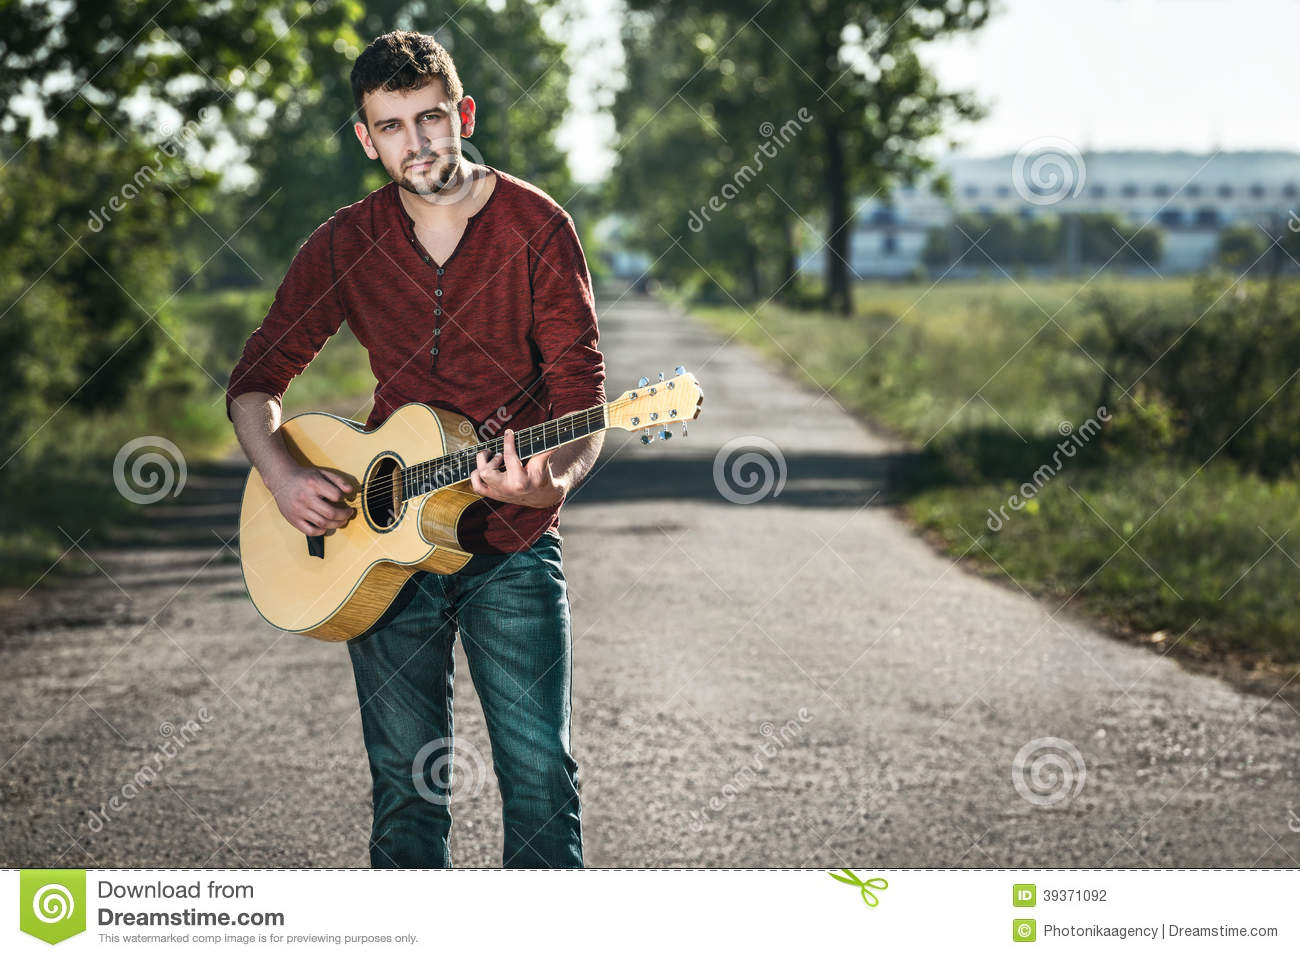 Guitarist singing on the road